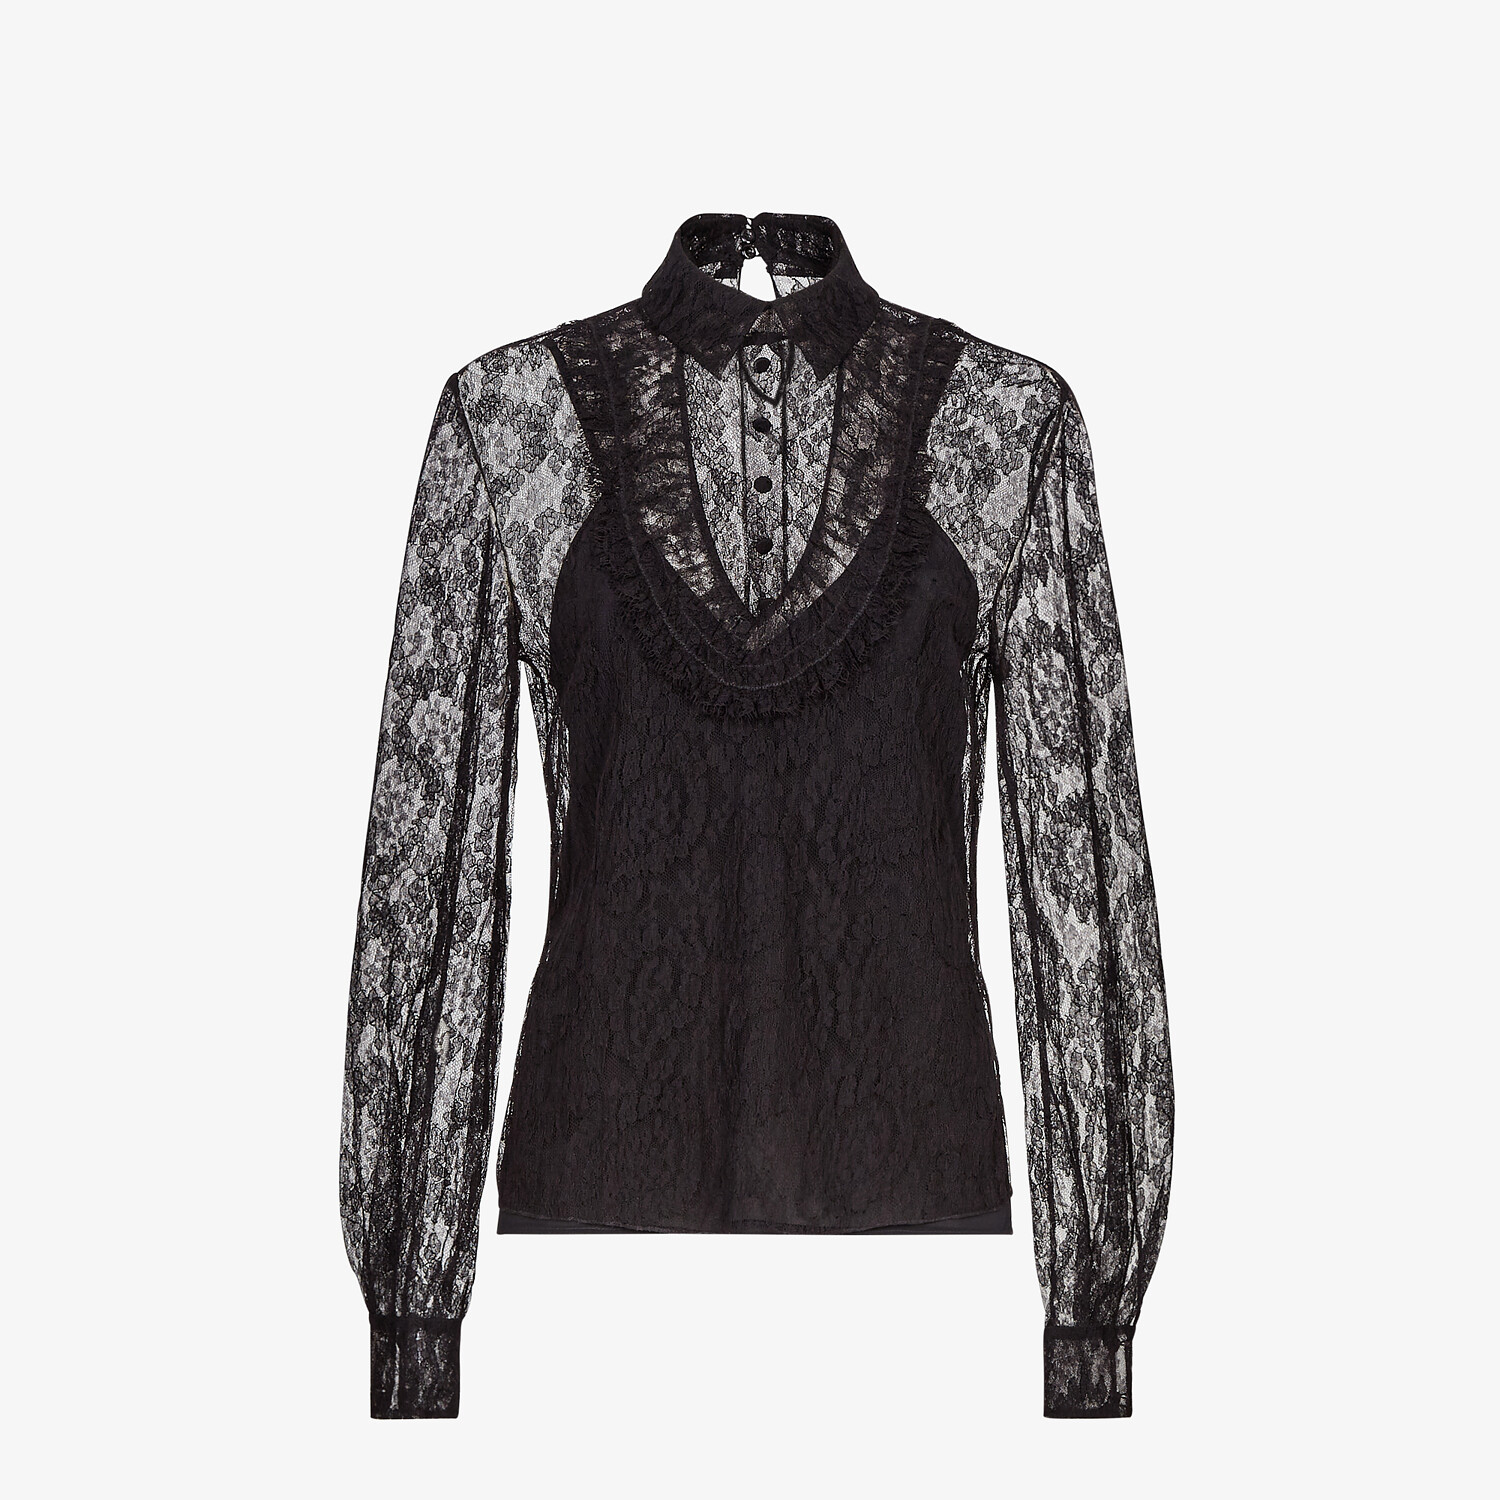 FENDI SHIRT - Black lace shirt - view 1 detail